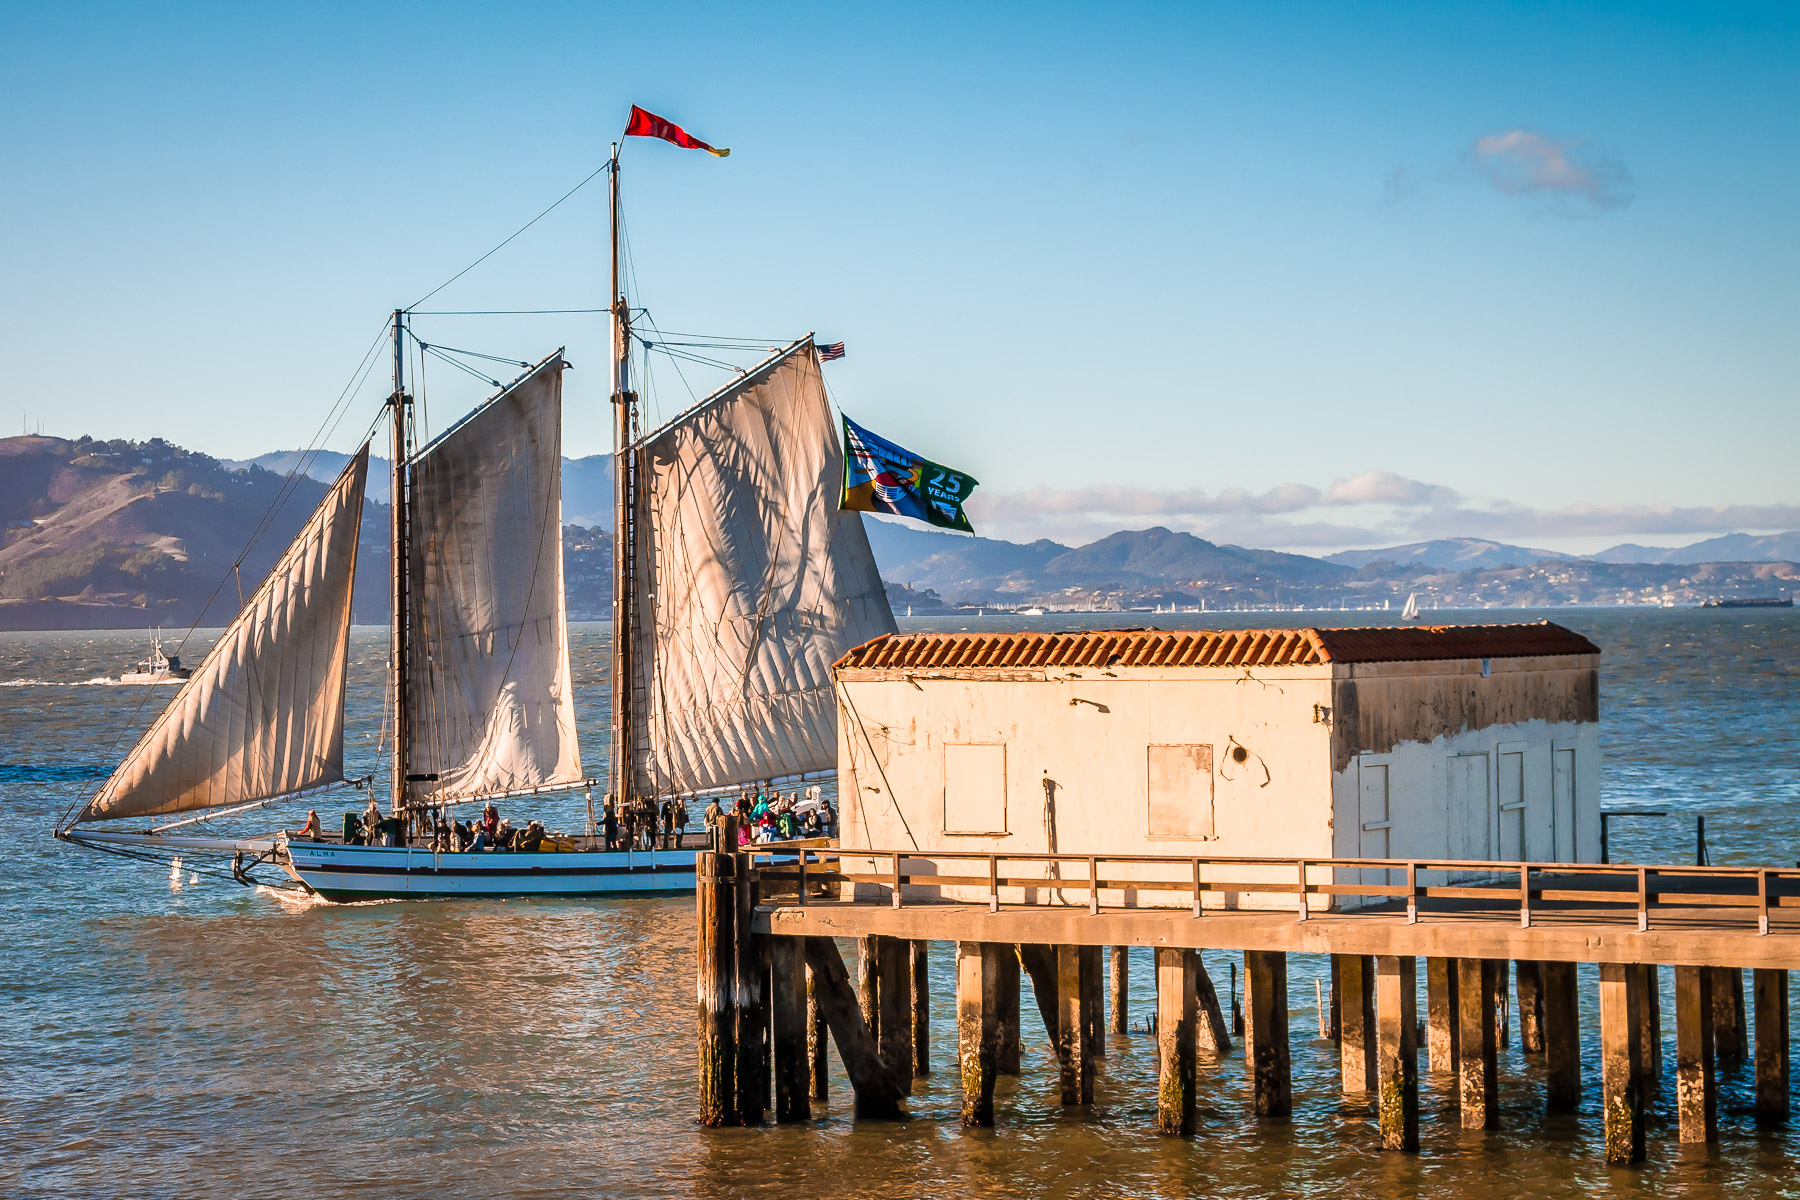 The 1891 scow schooner Alma, in the collection of the San Francisco Maritime National Historical Park, sails past a pier in San Francisco Bay.